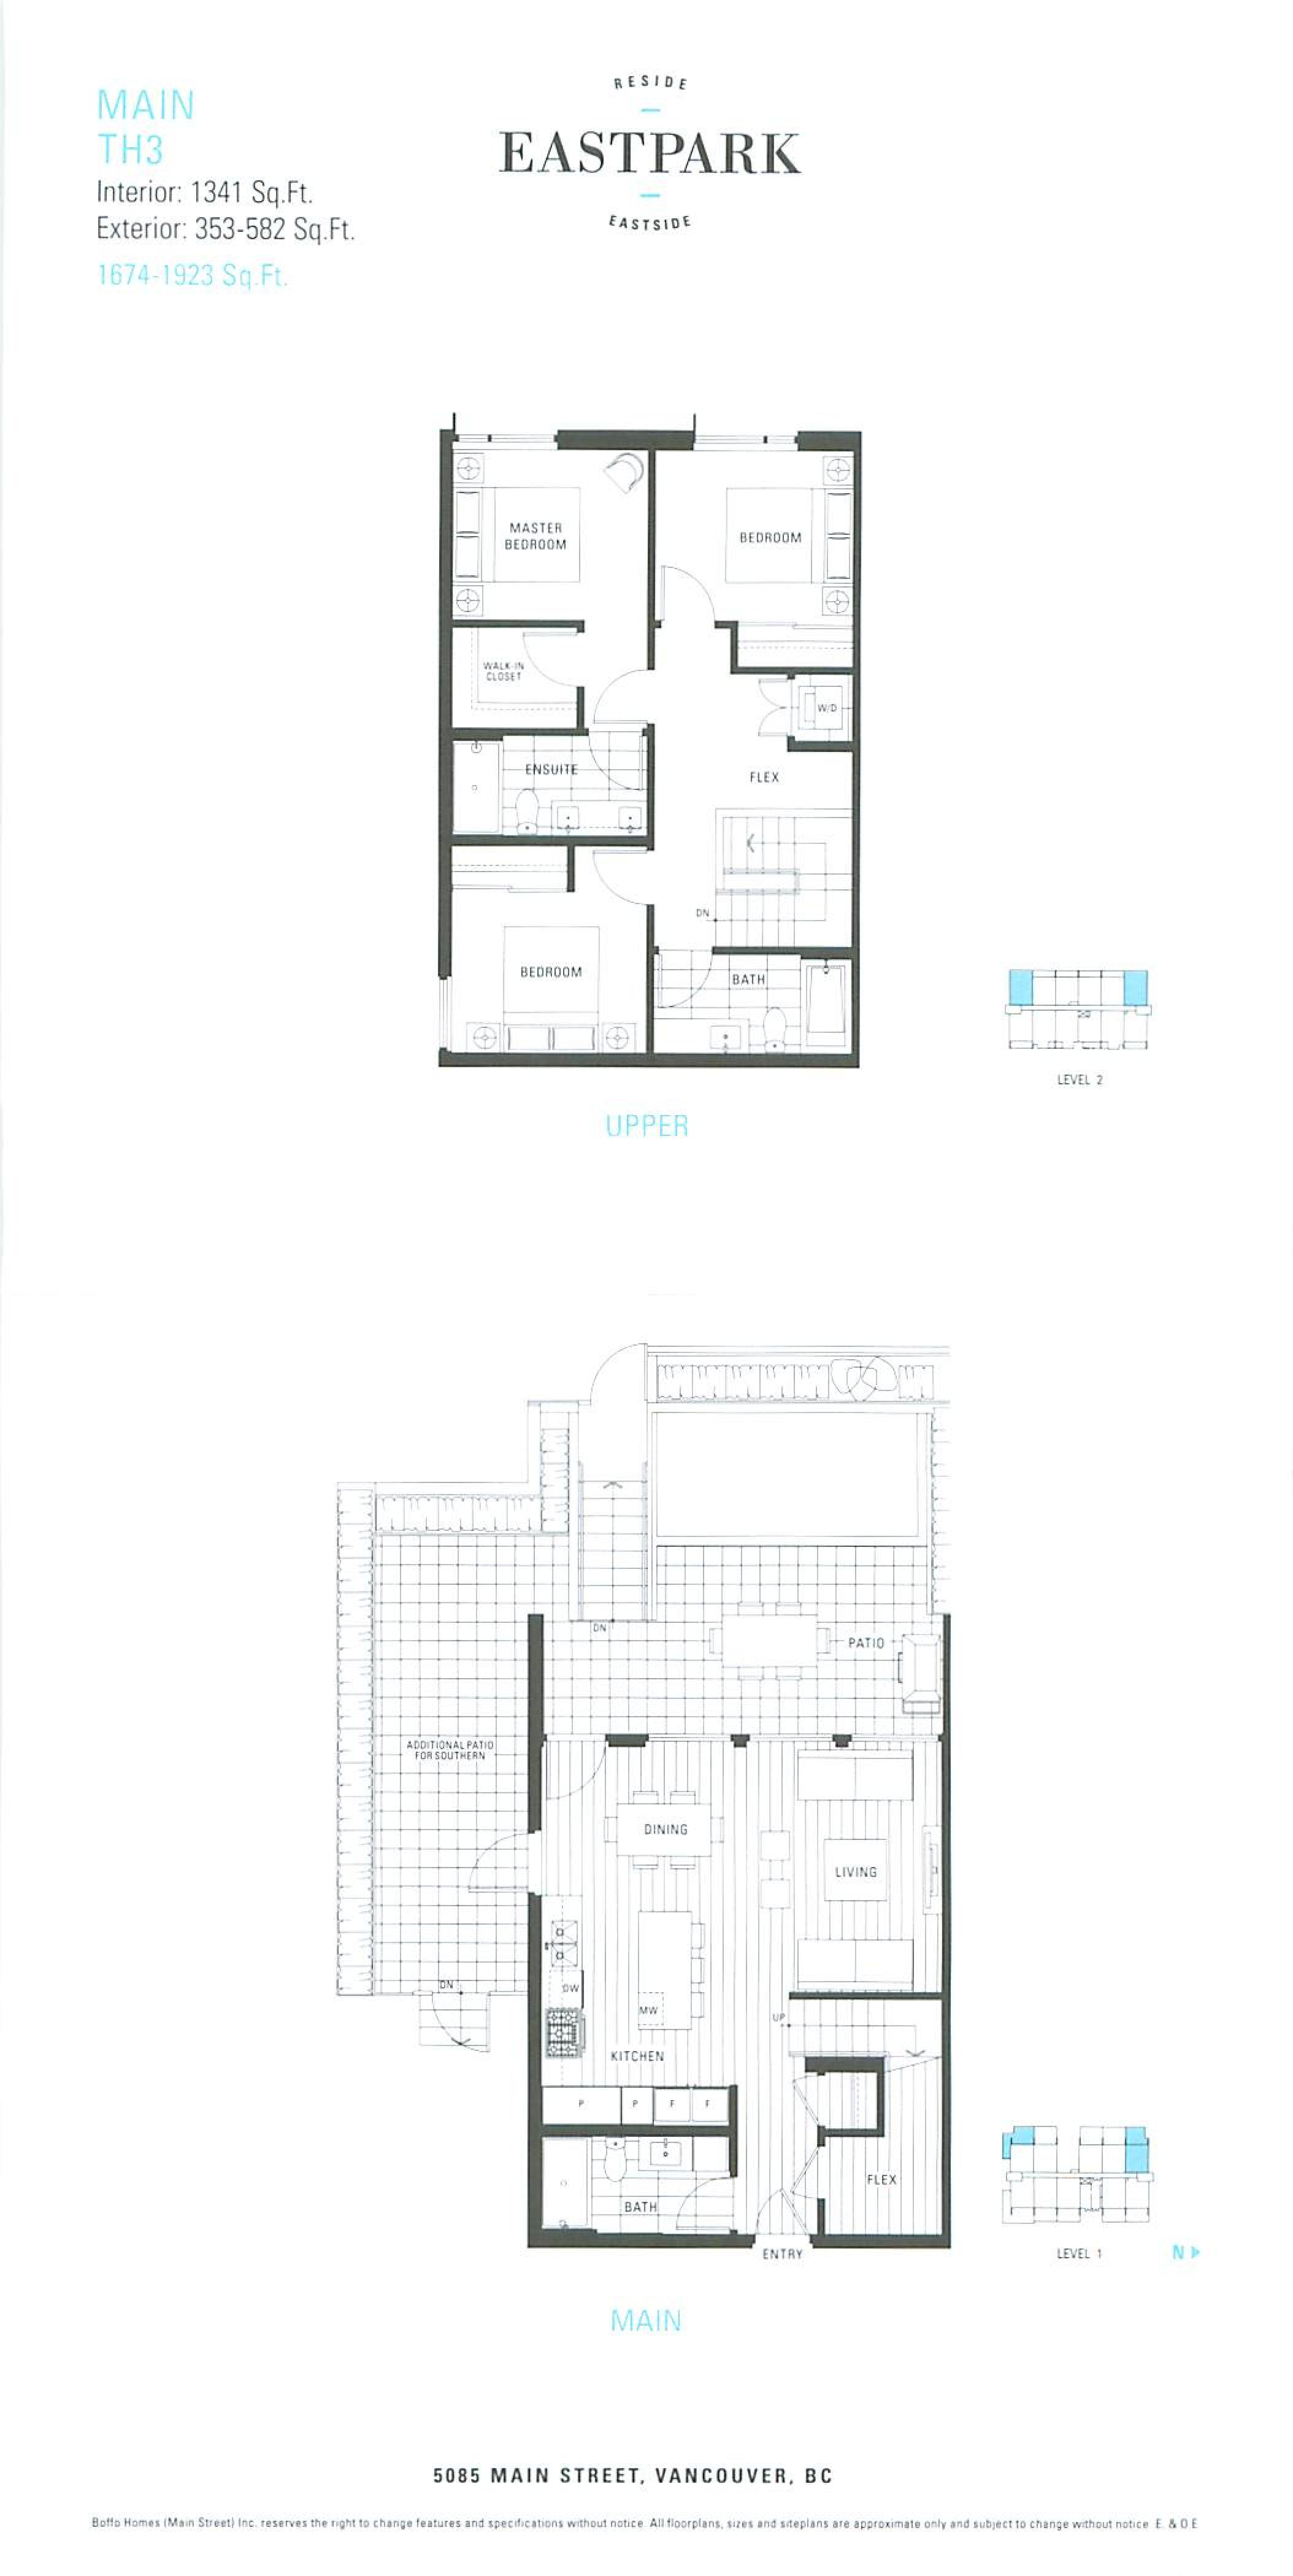 EastPark Main Larger Floor Plans Mike Stewart-page-008